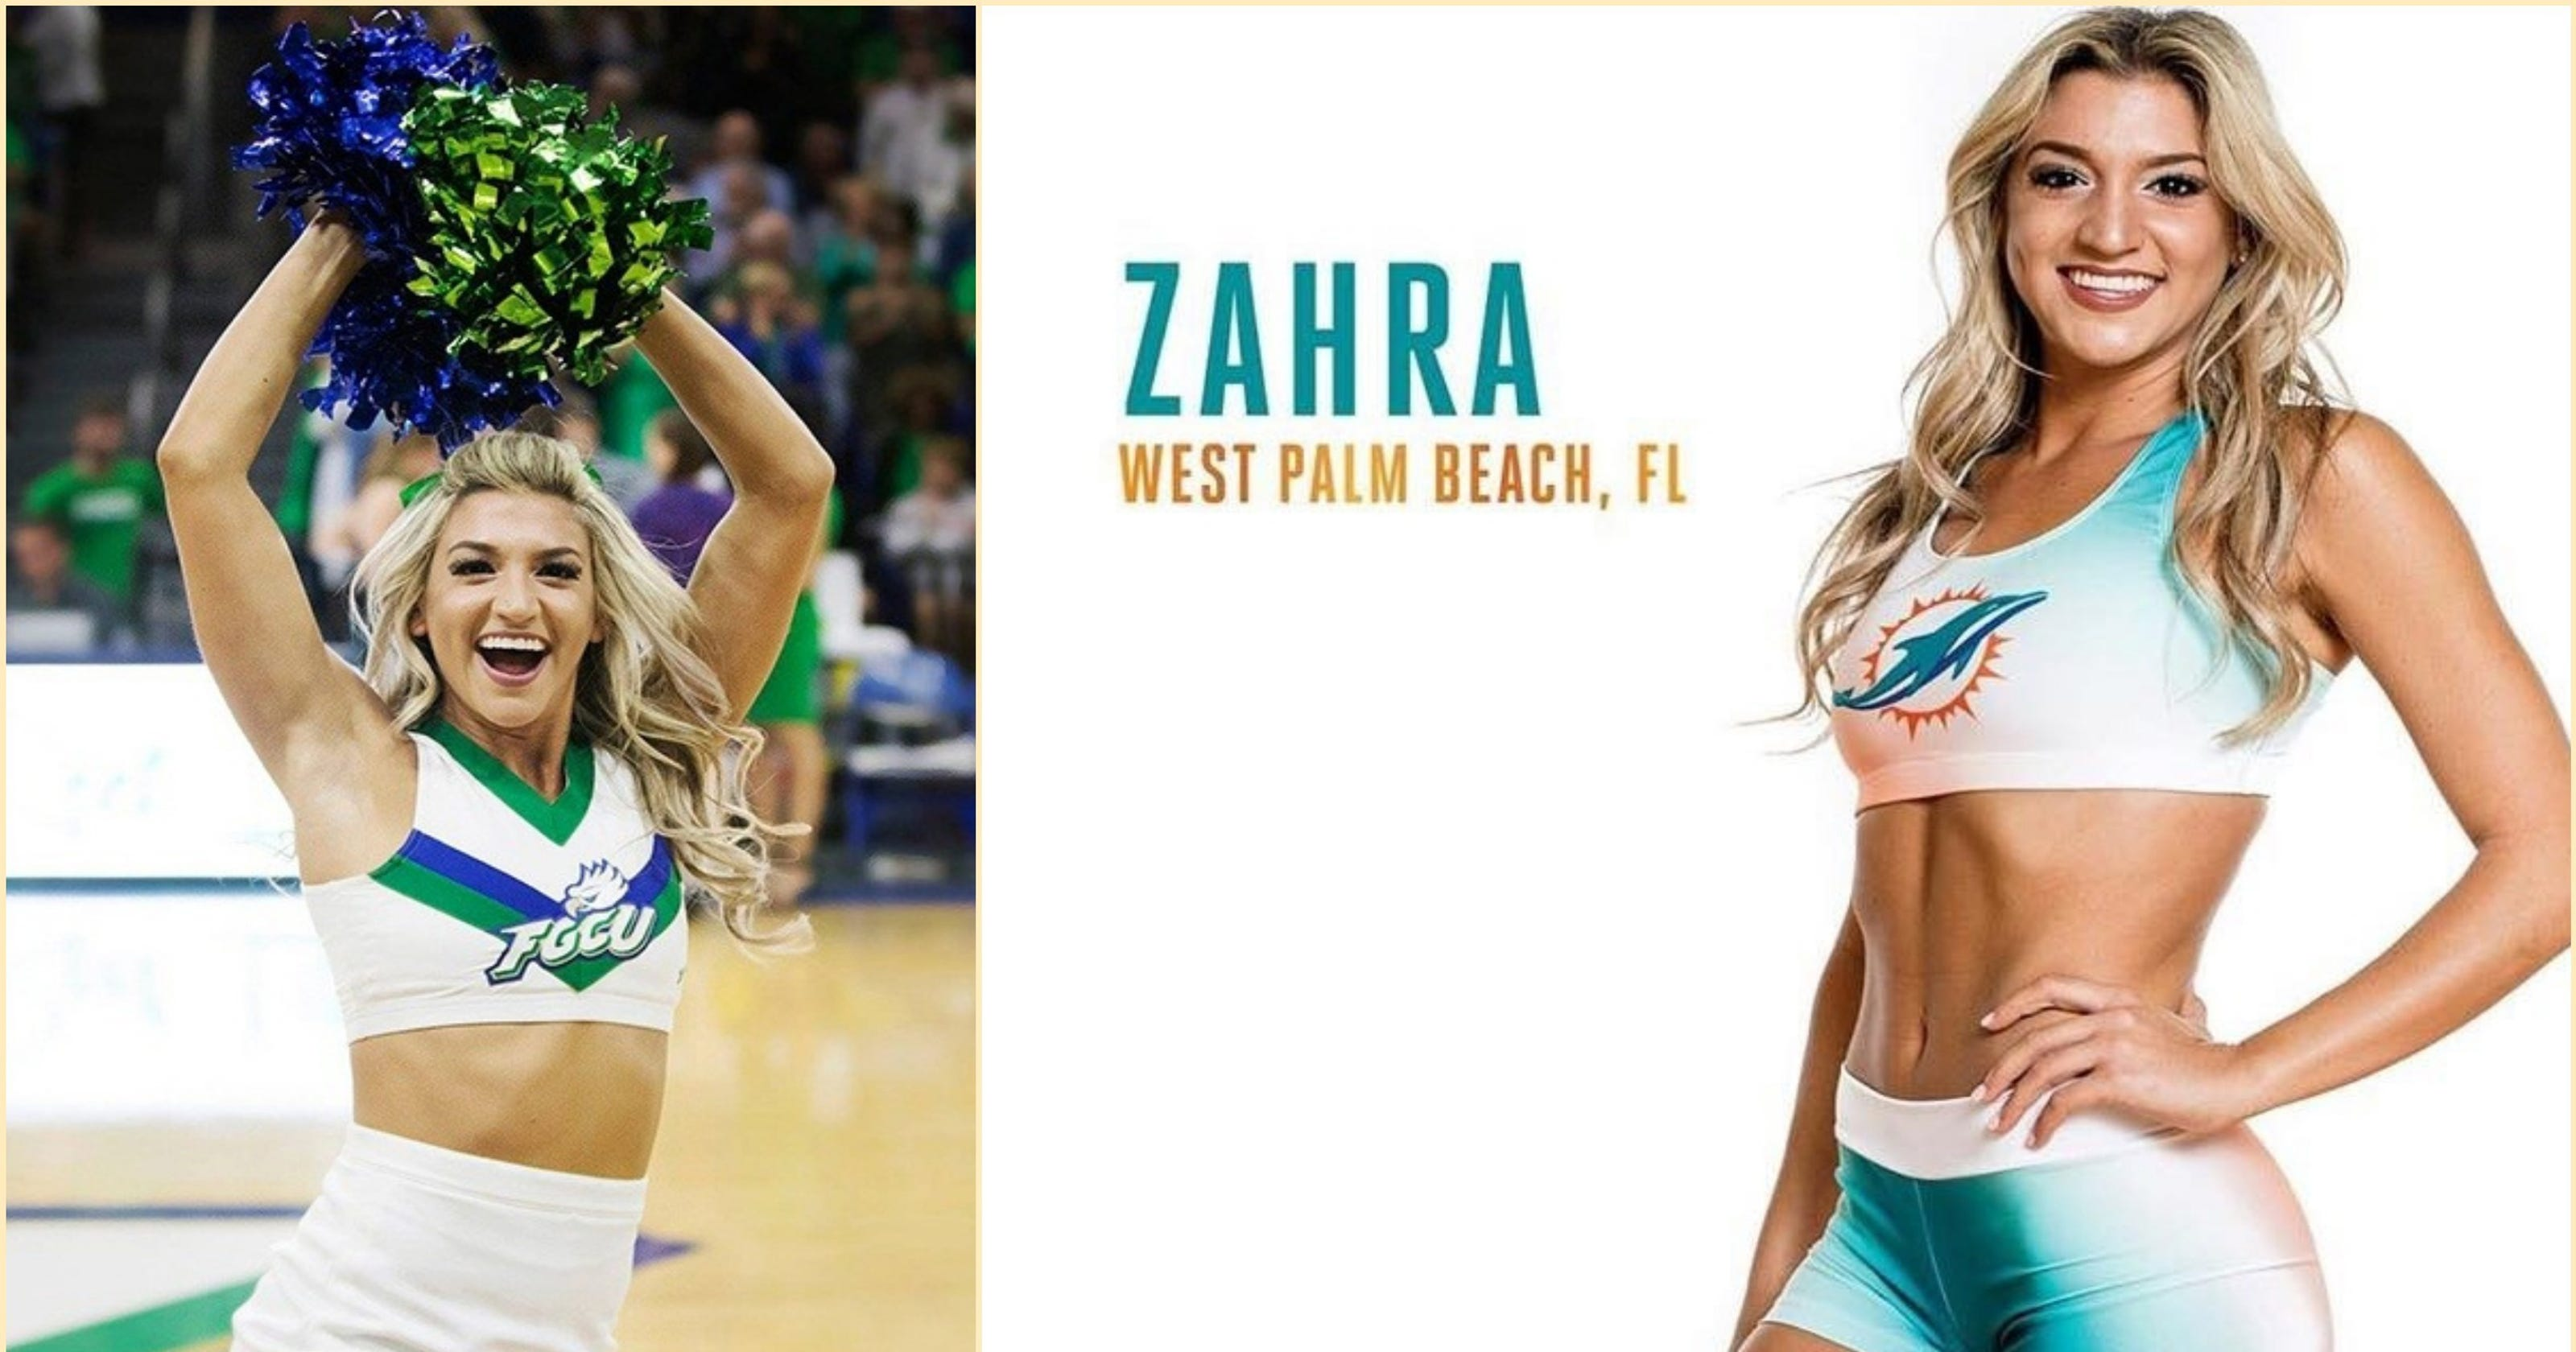 af3642b70 FGCU s Zahra Fayad is school s first in the NFL—as Miami Dolphins  cheerleader